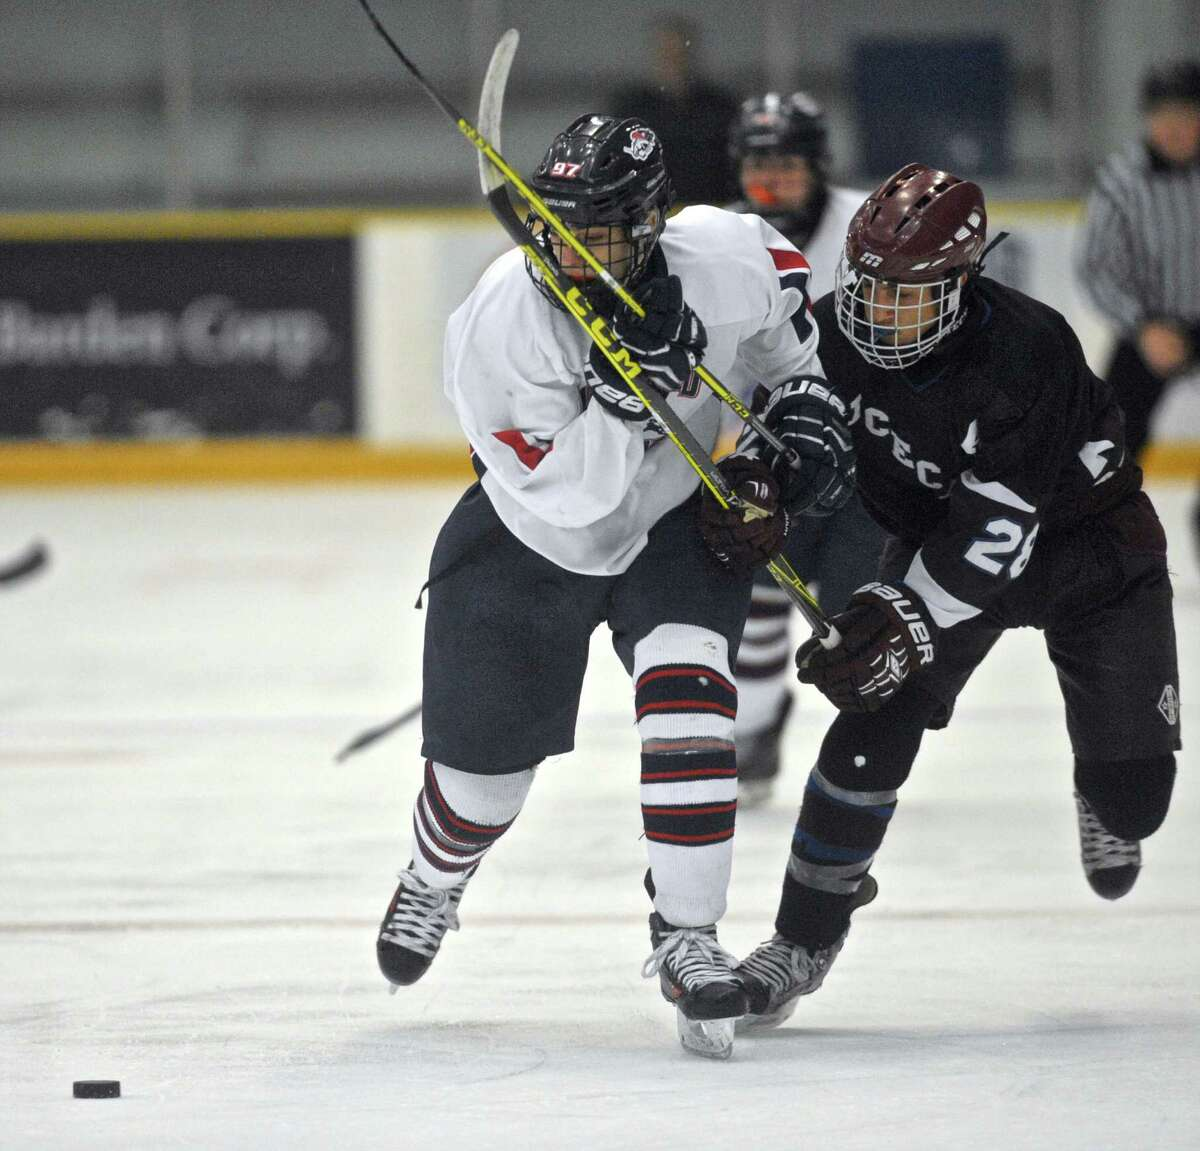 NFI's Sam Mitchell (97) and BBD's Andrew Almeida (28) battle for the puck in the boys high school ice hockey game between Brookfield-Bethel-Danbury and New Fairfield-Immaculate on Wednesday, February 17, 2016, at the Danbury Ice Arena, in Danbury, Conn.